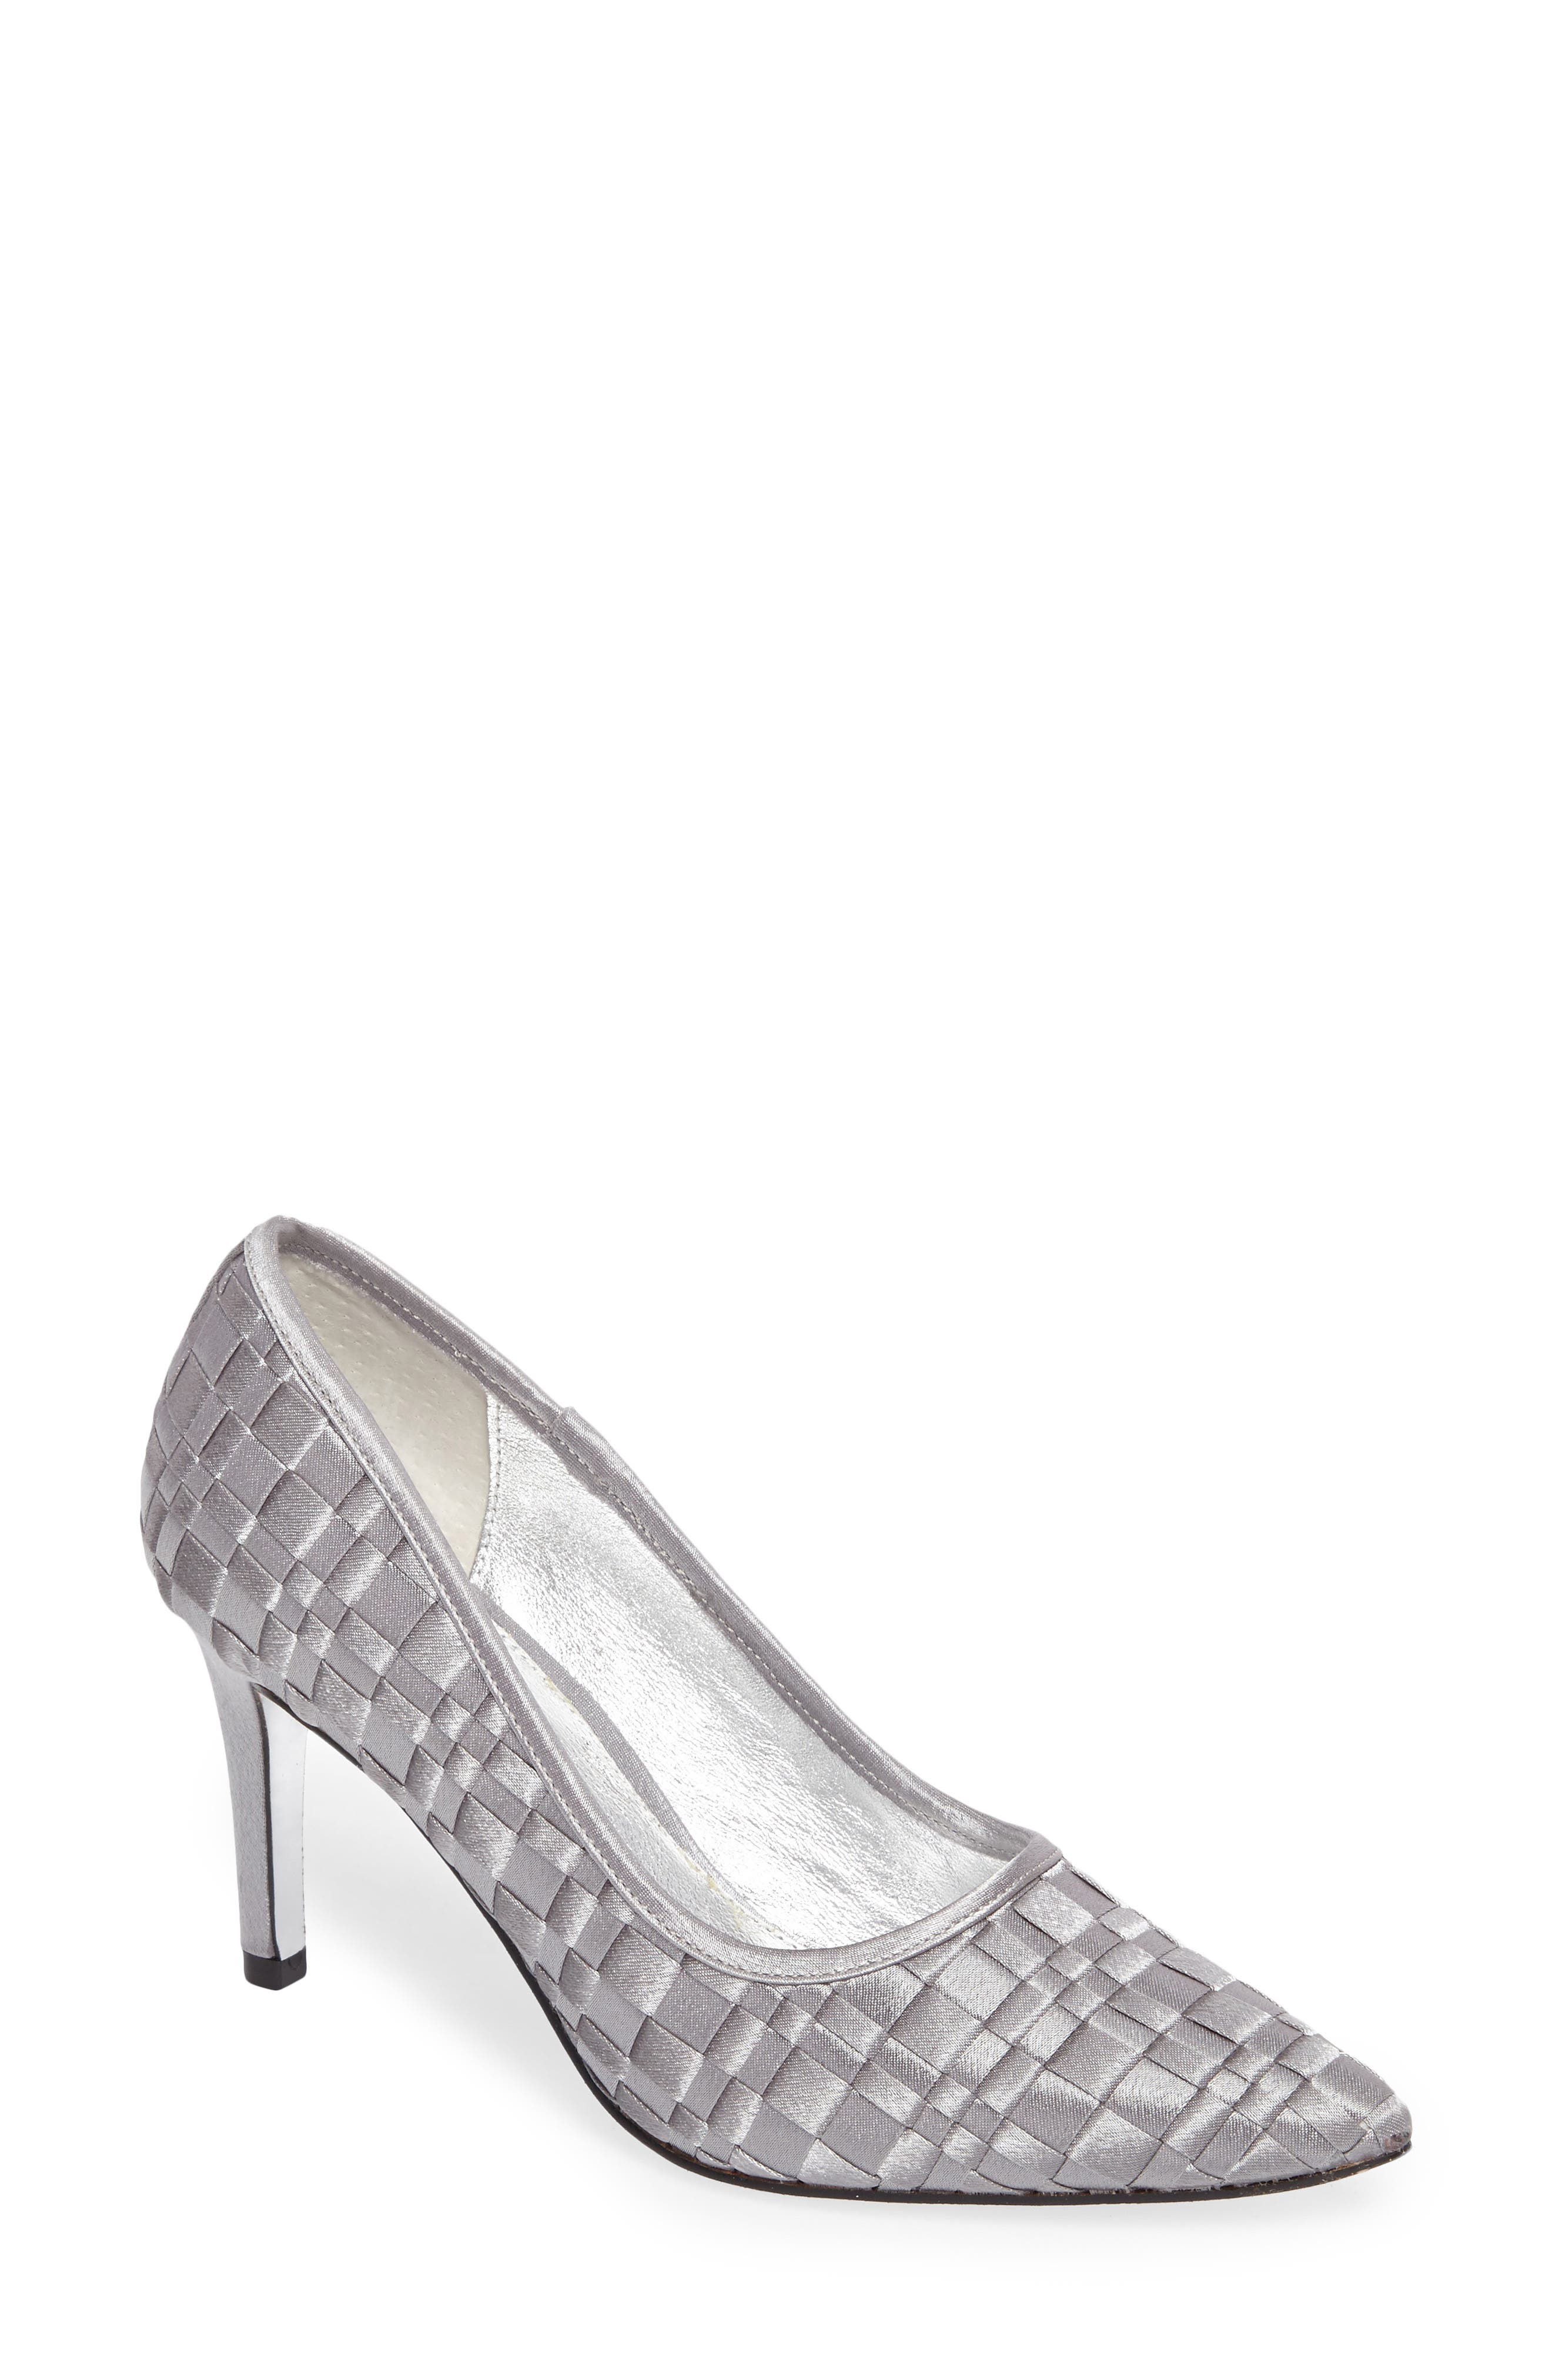 Main Image - Adrianna Papell Hasting Pointy Toe Pump (Women)